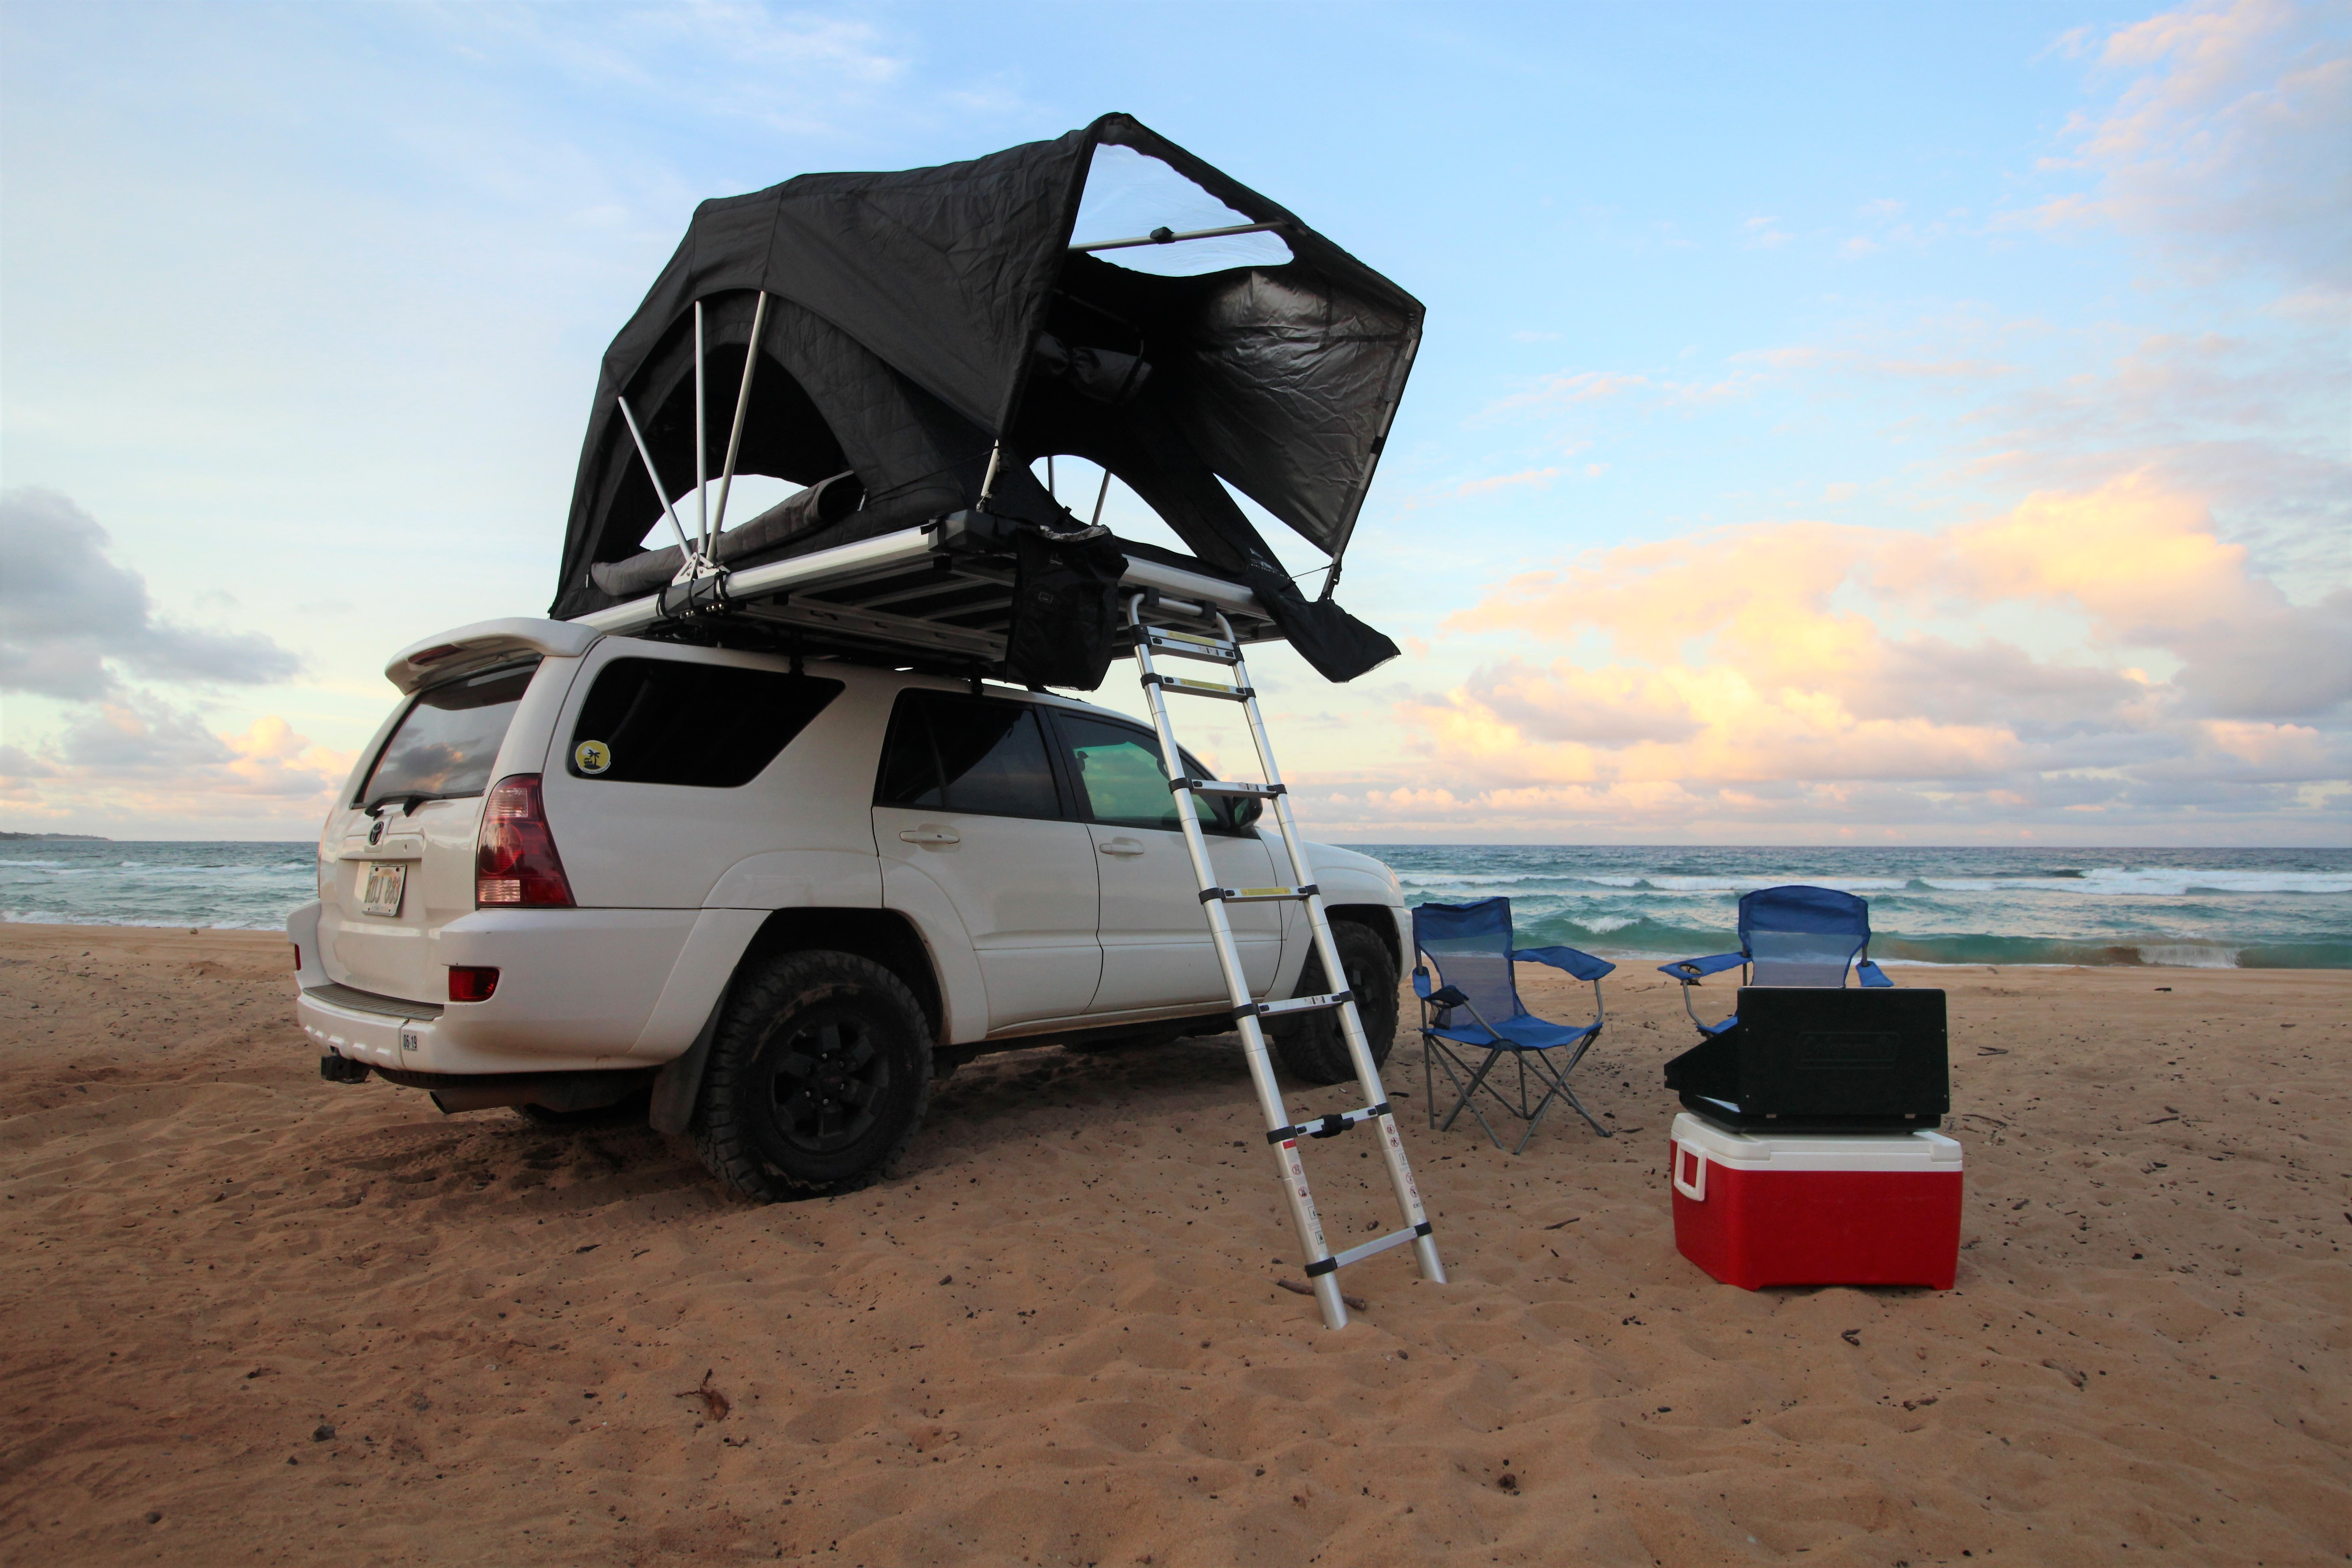 2005 Toyota 4runner 4x4 With Roof Top Tent Truck Camper Rental In Lihue Hi Outdoorsy